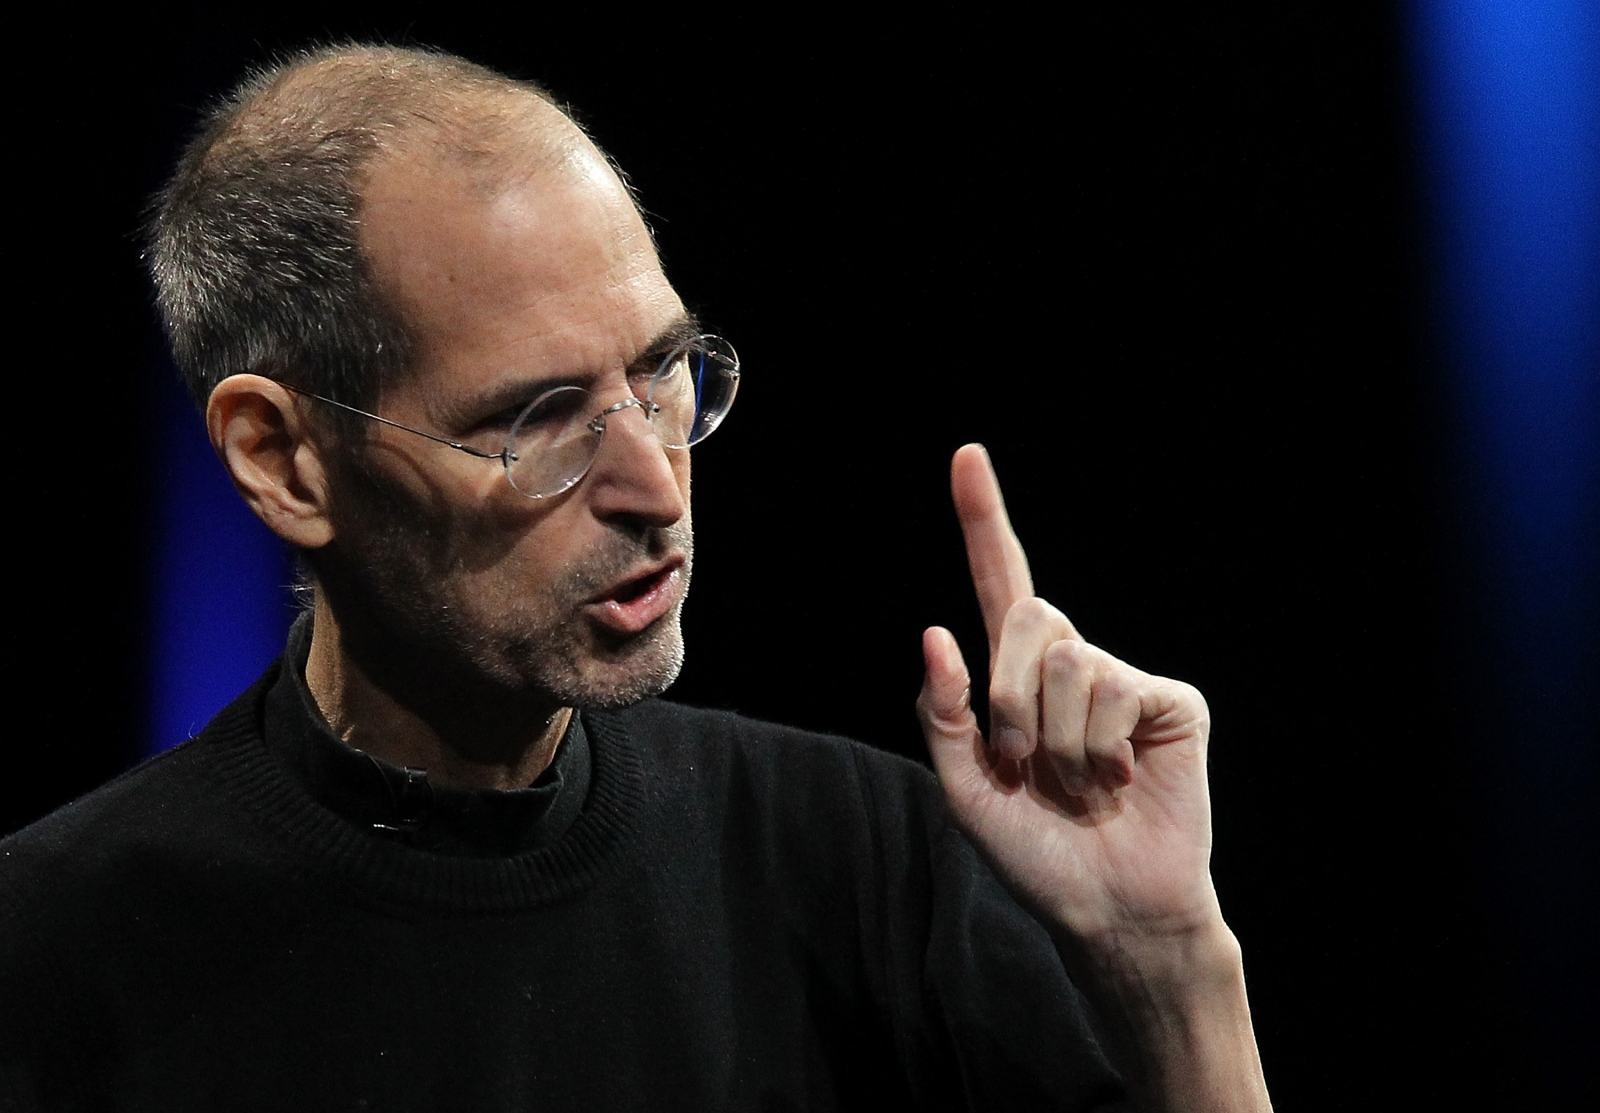 Jobs: Steve Jobs Initially Thought The Genius Bar Was 'idiotic